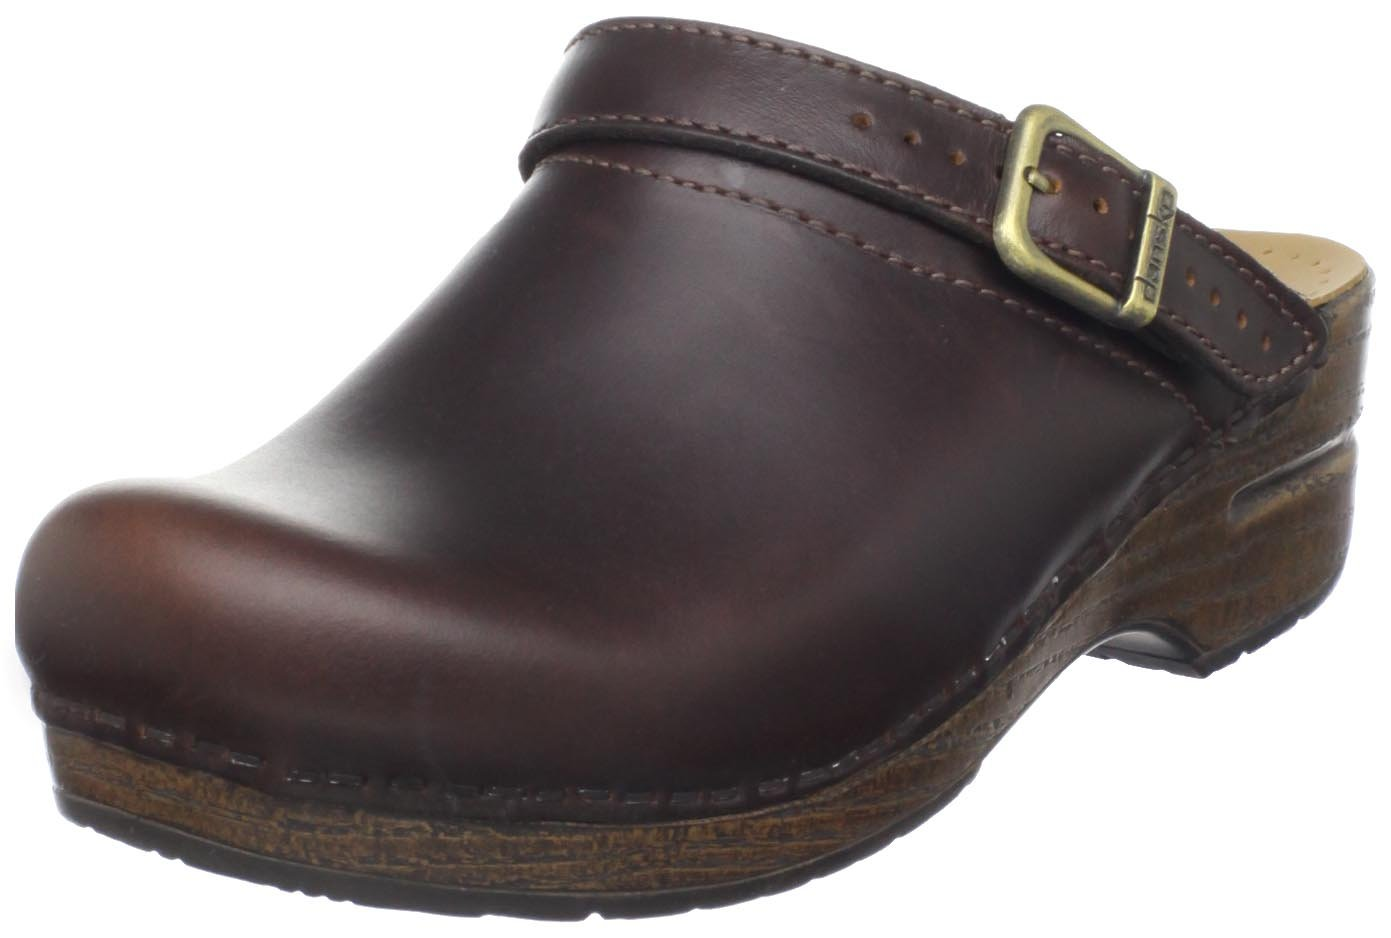 Dansko Women's Ingrid Oiled Full Grain Clog,Espresso,39 EU/8.5-9 M US